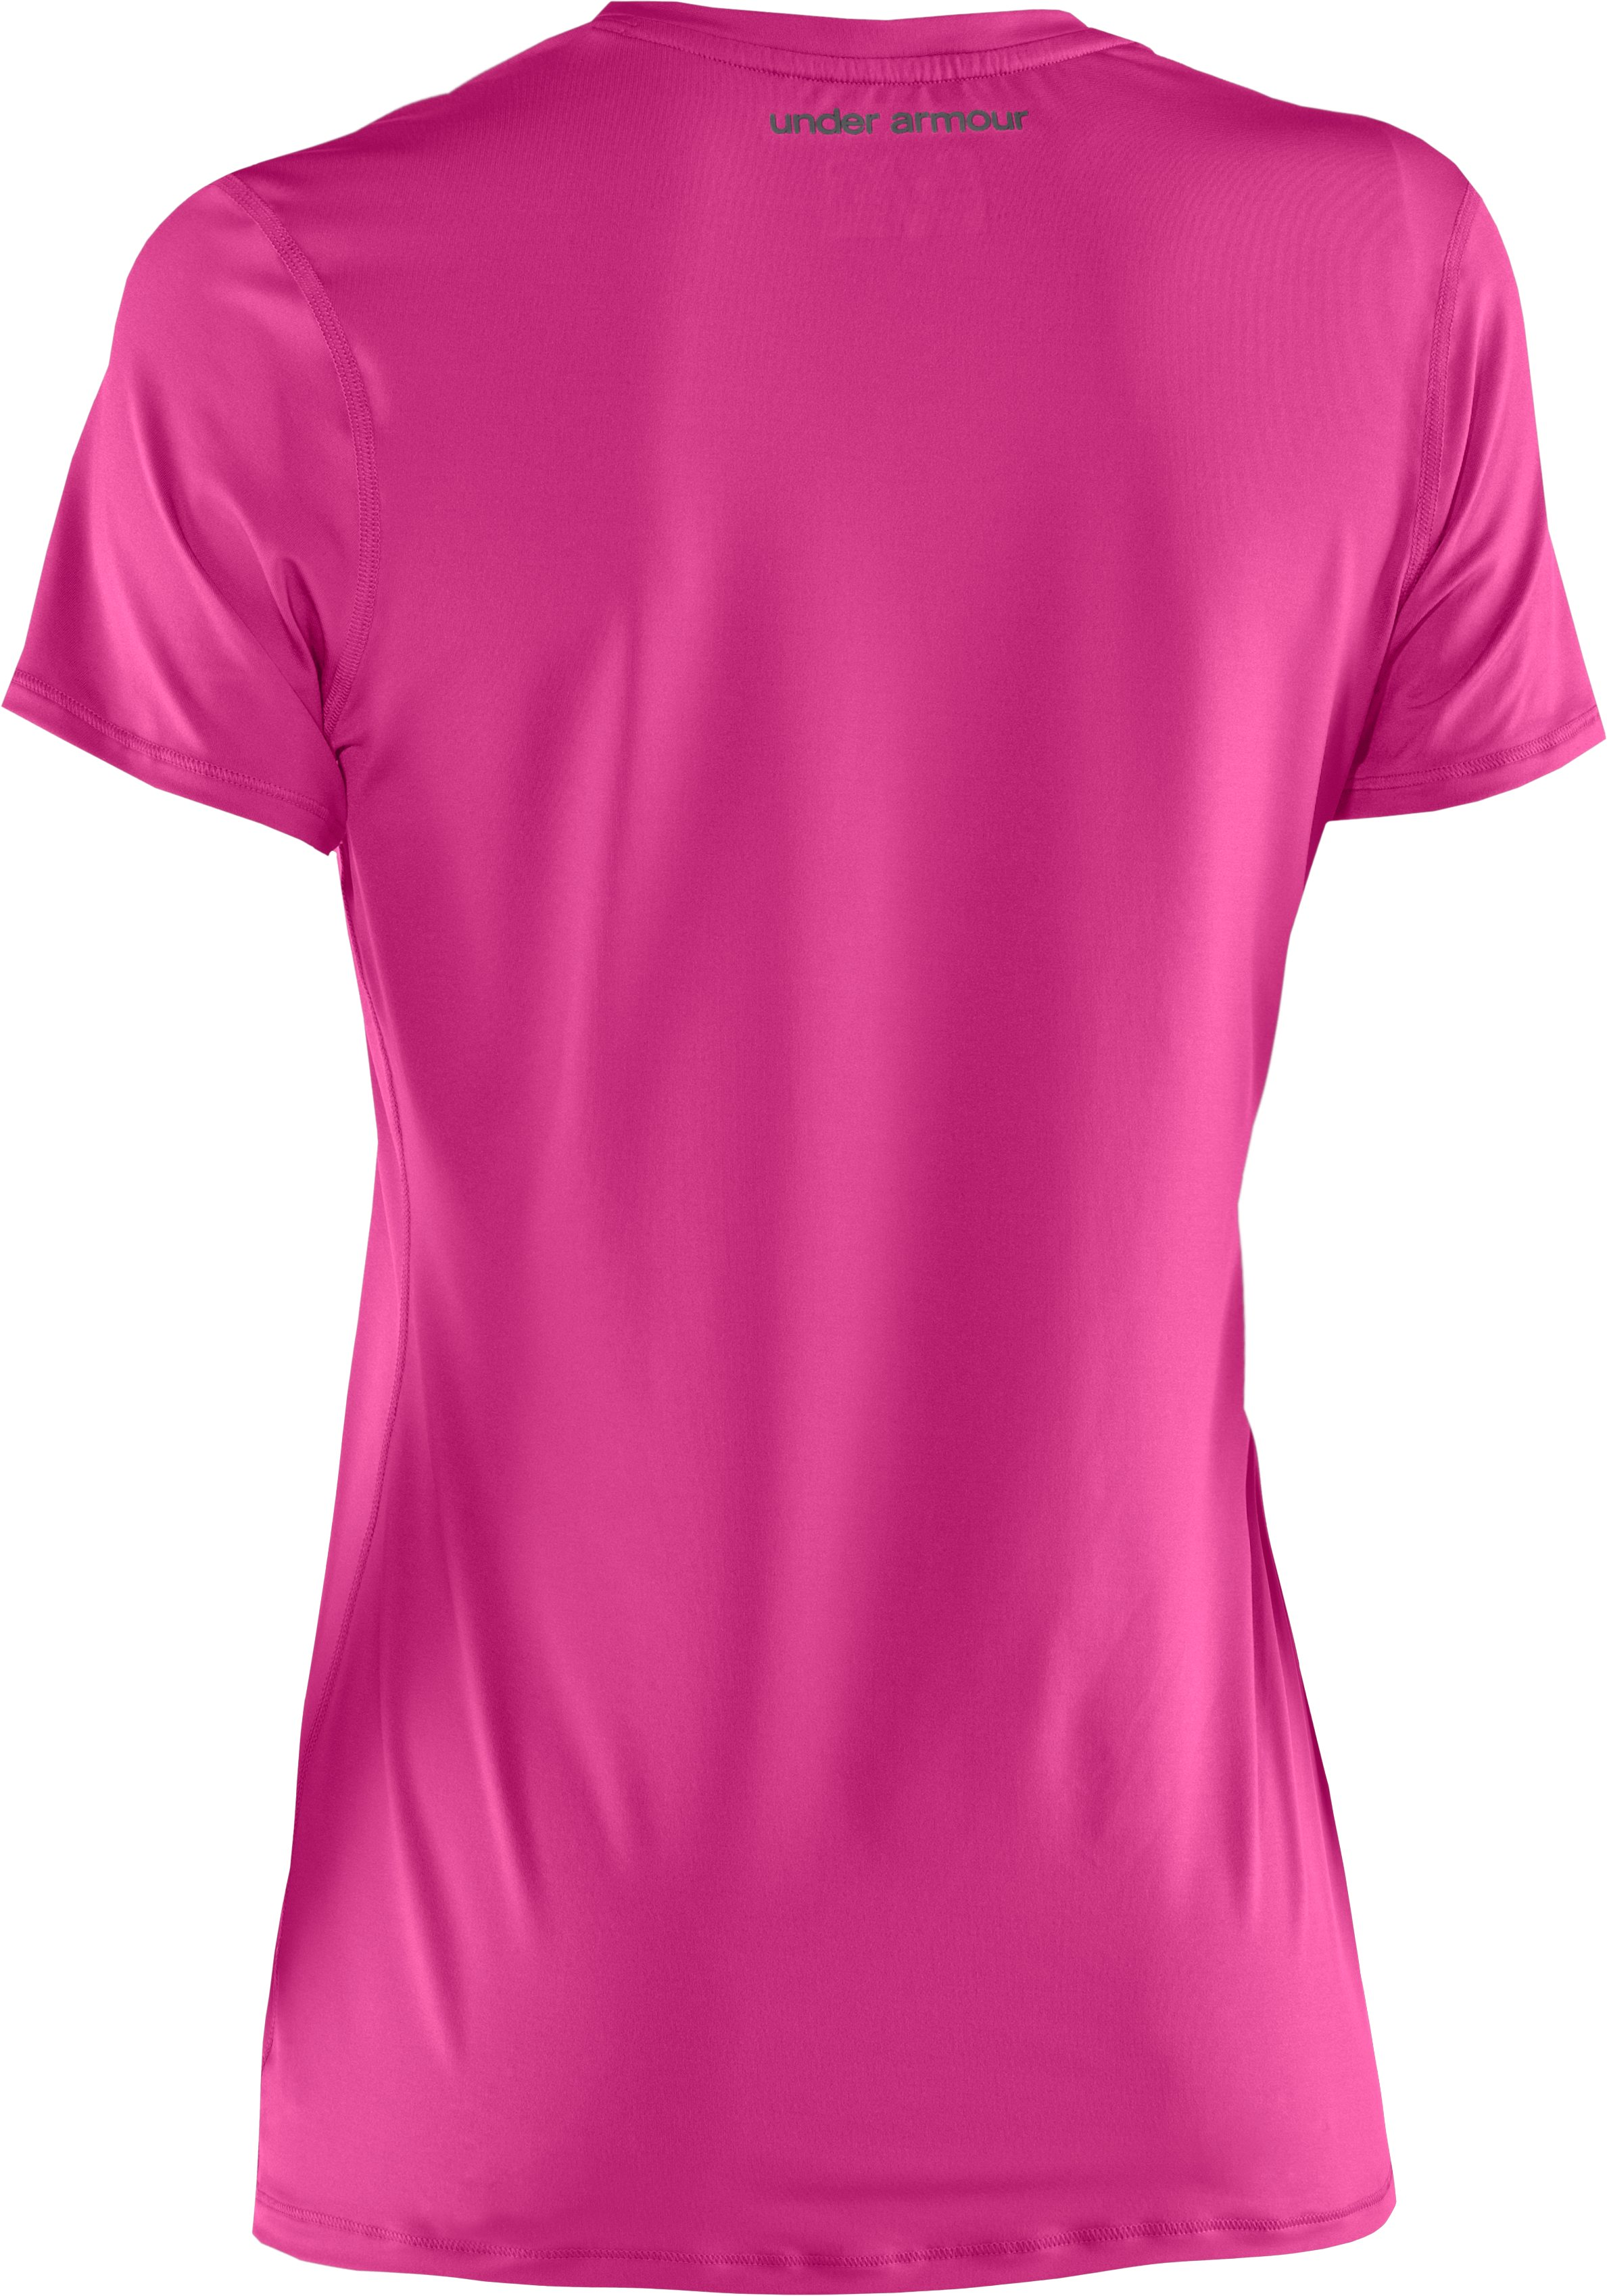 Women's HeatGear® Sonic Short Sleeve, Playful,